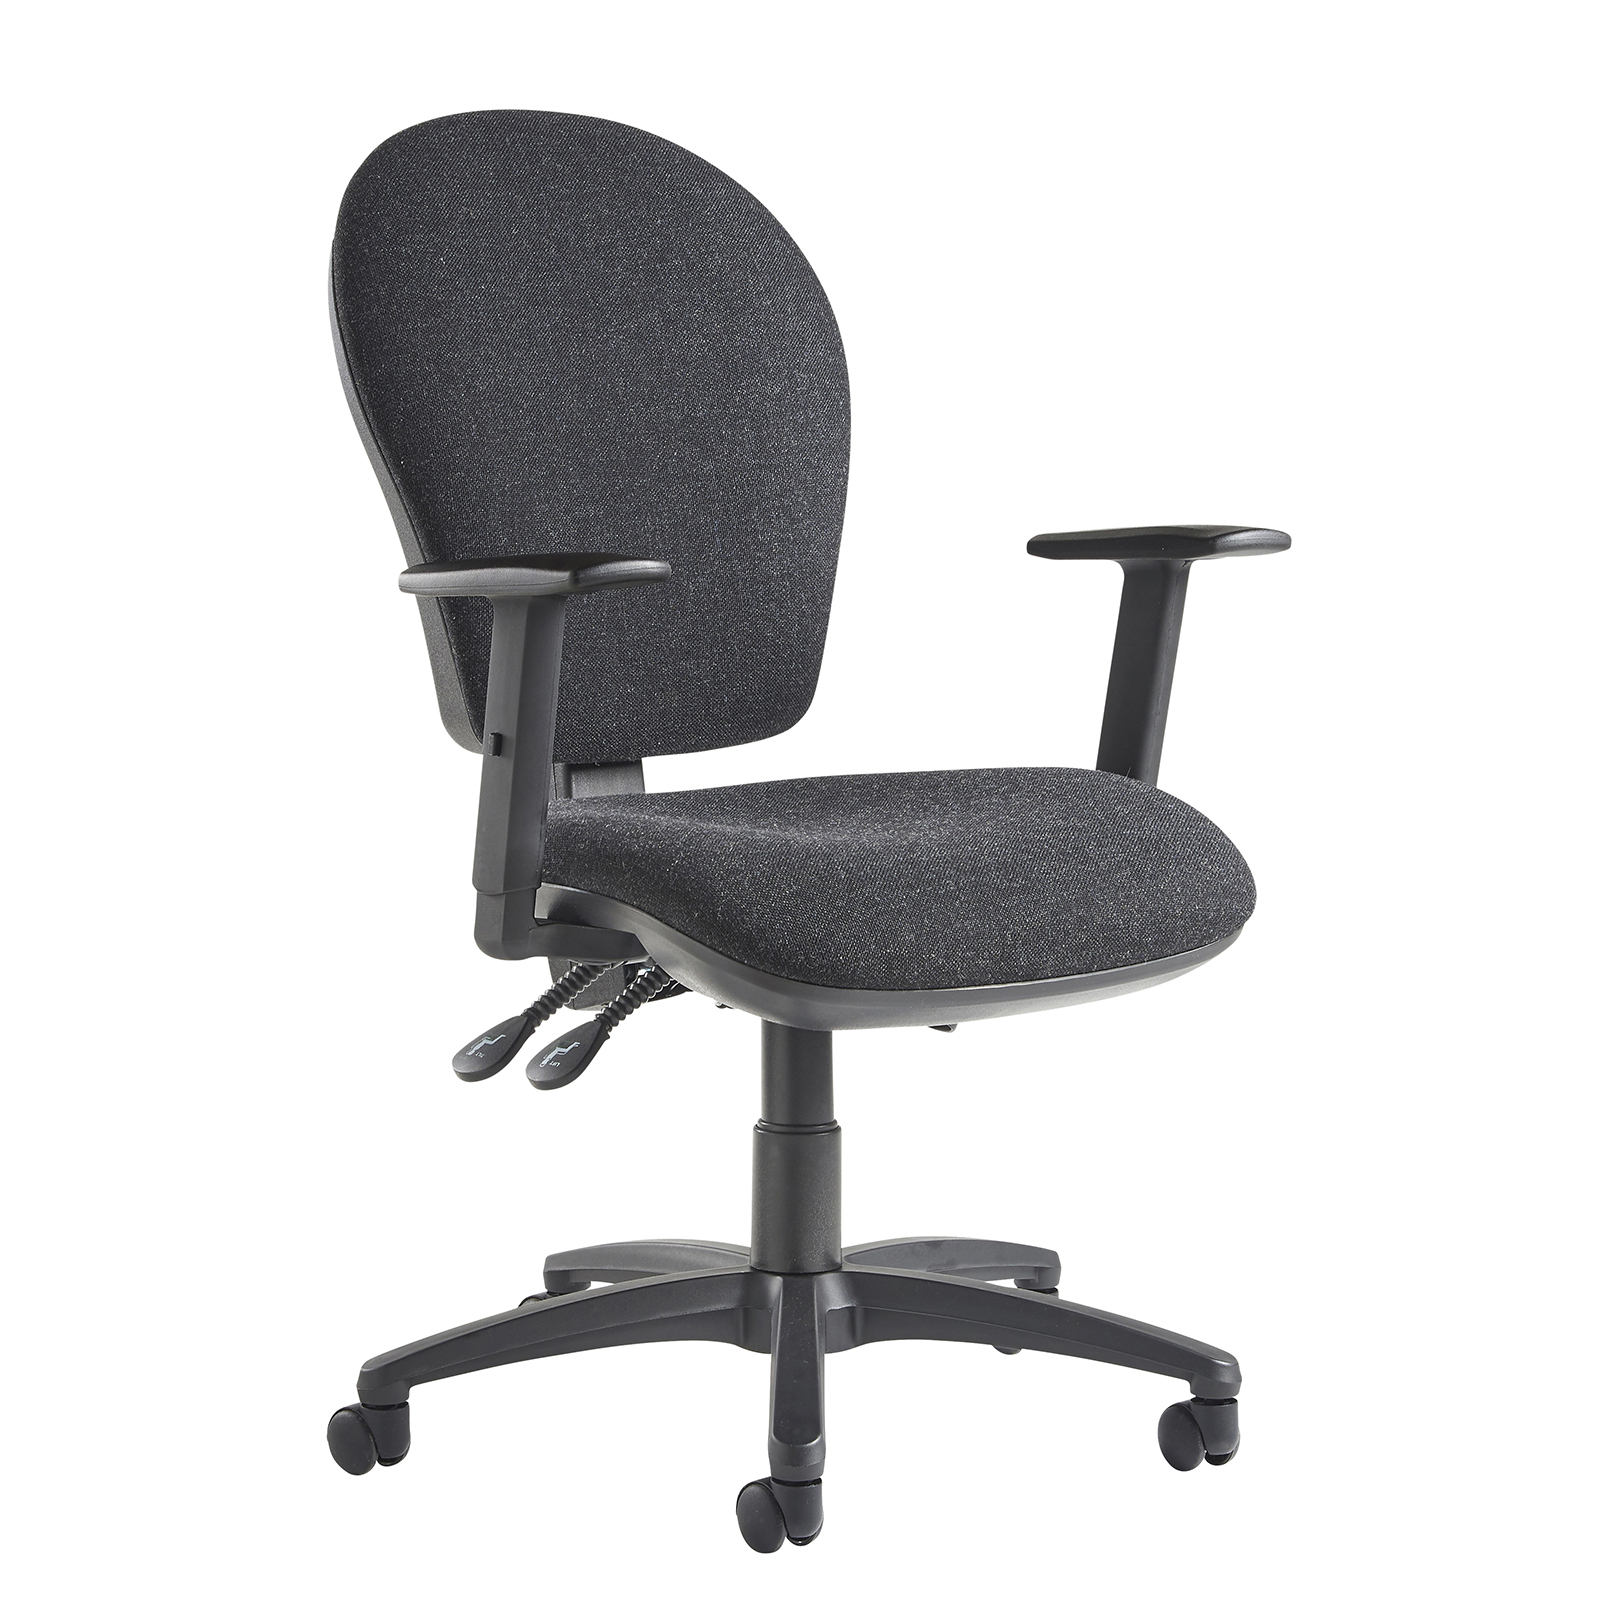 Lento high back operator chair with adjustable arms - charcoal